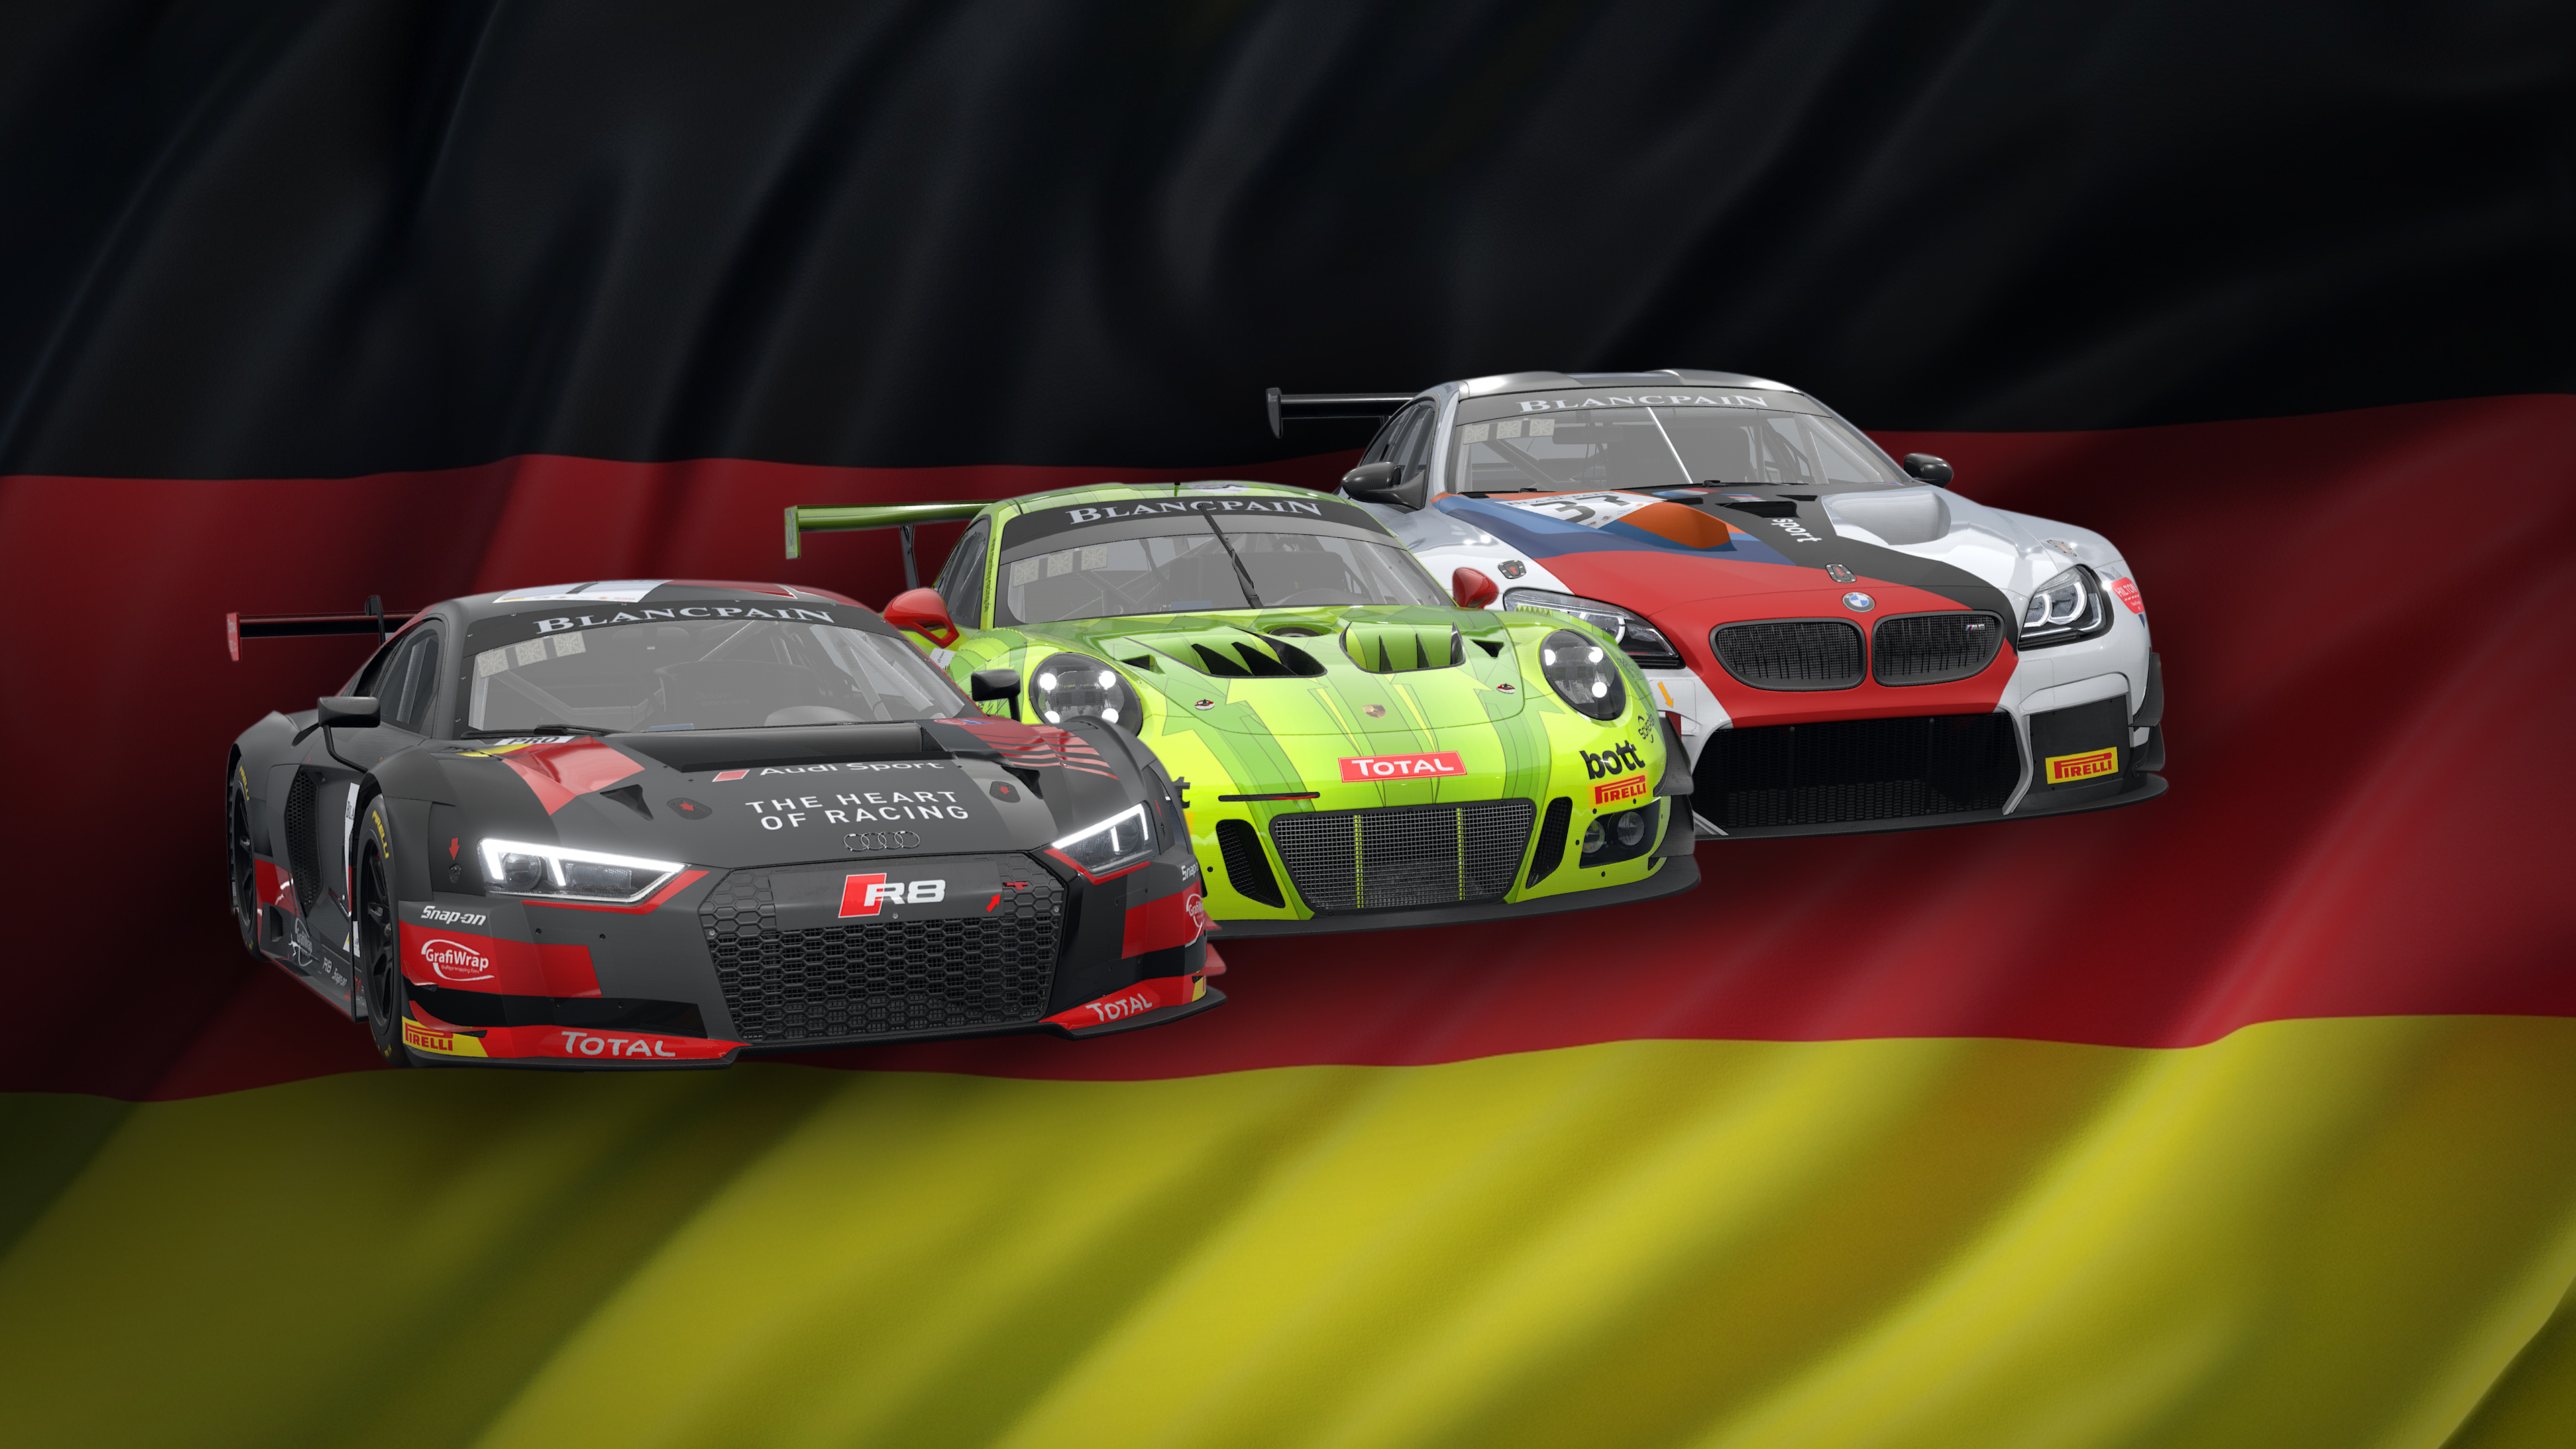 Assetto Corsa Competizione Cars #3: German Gladiators